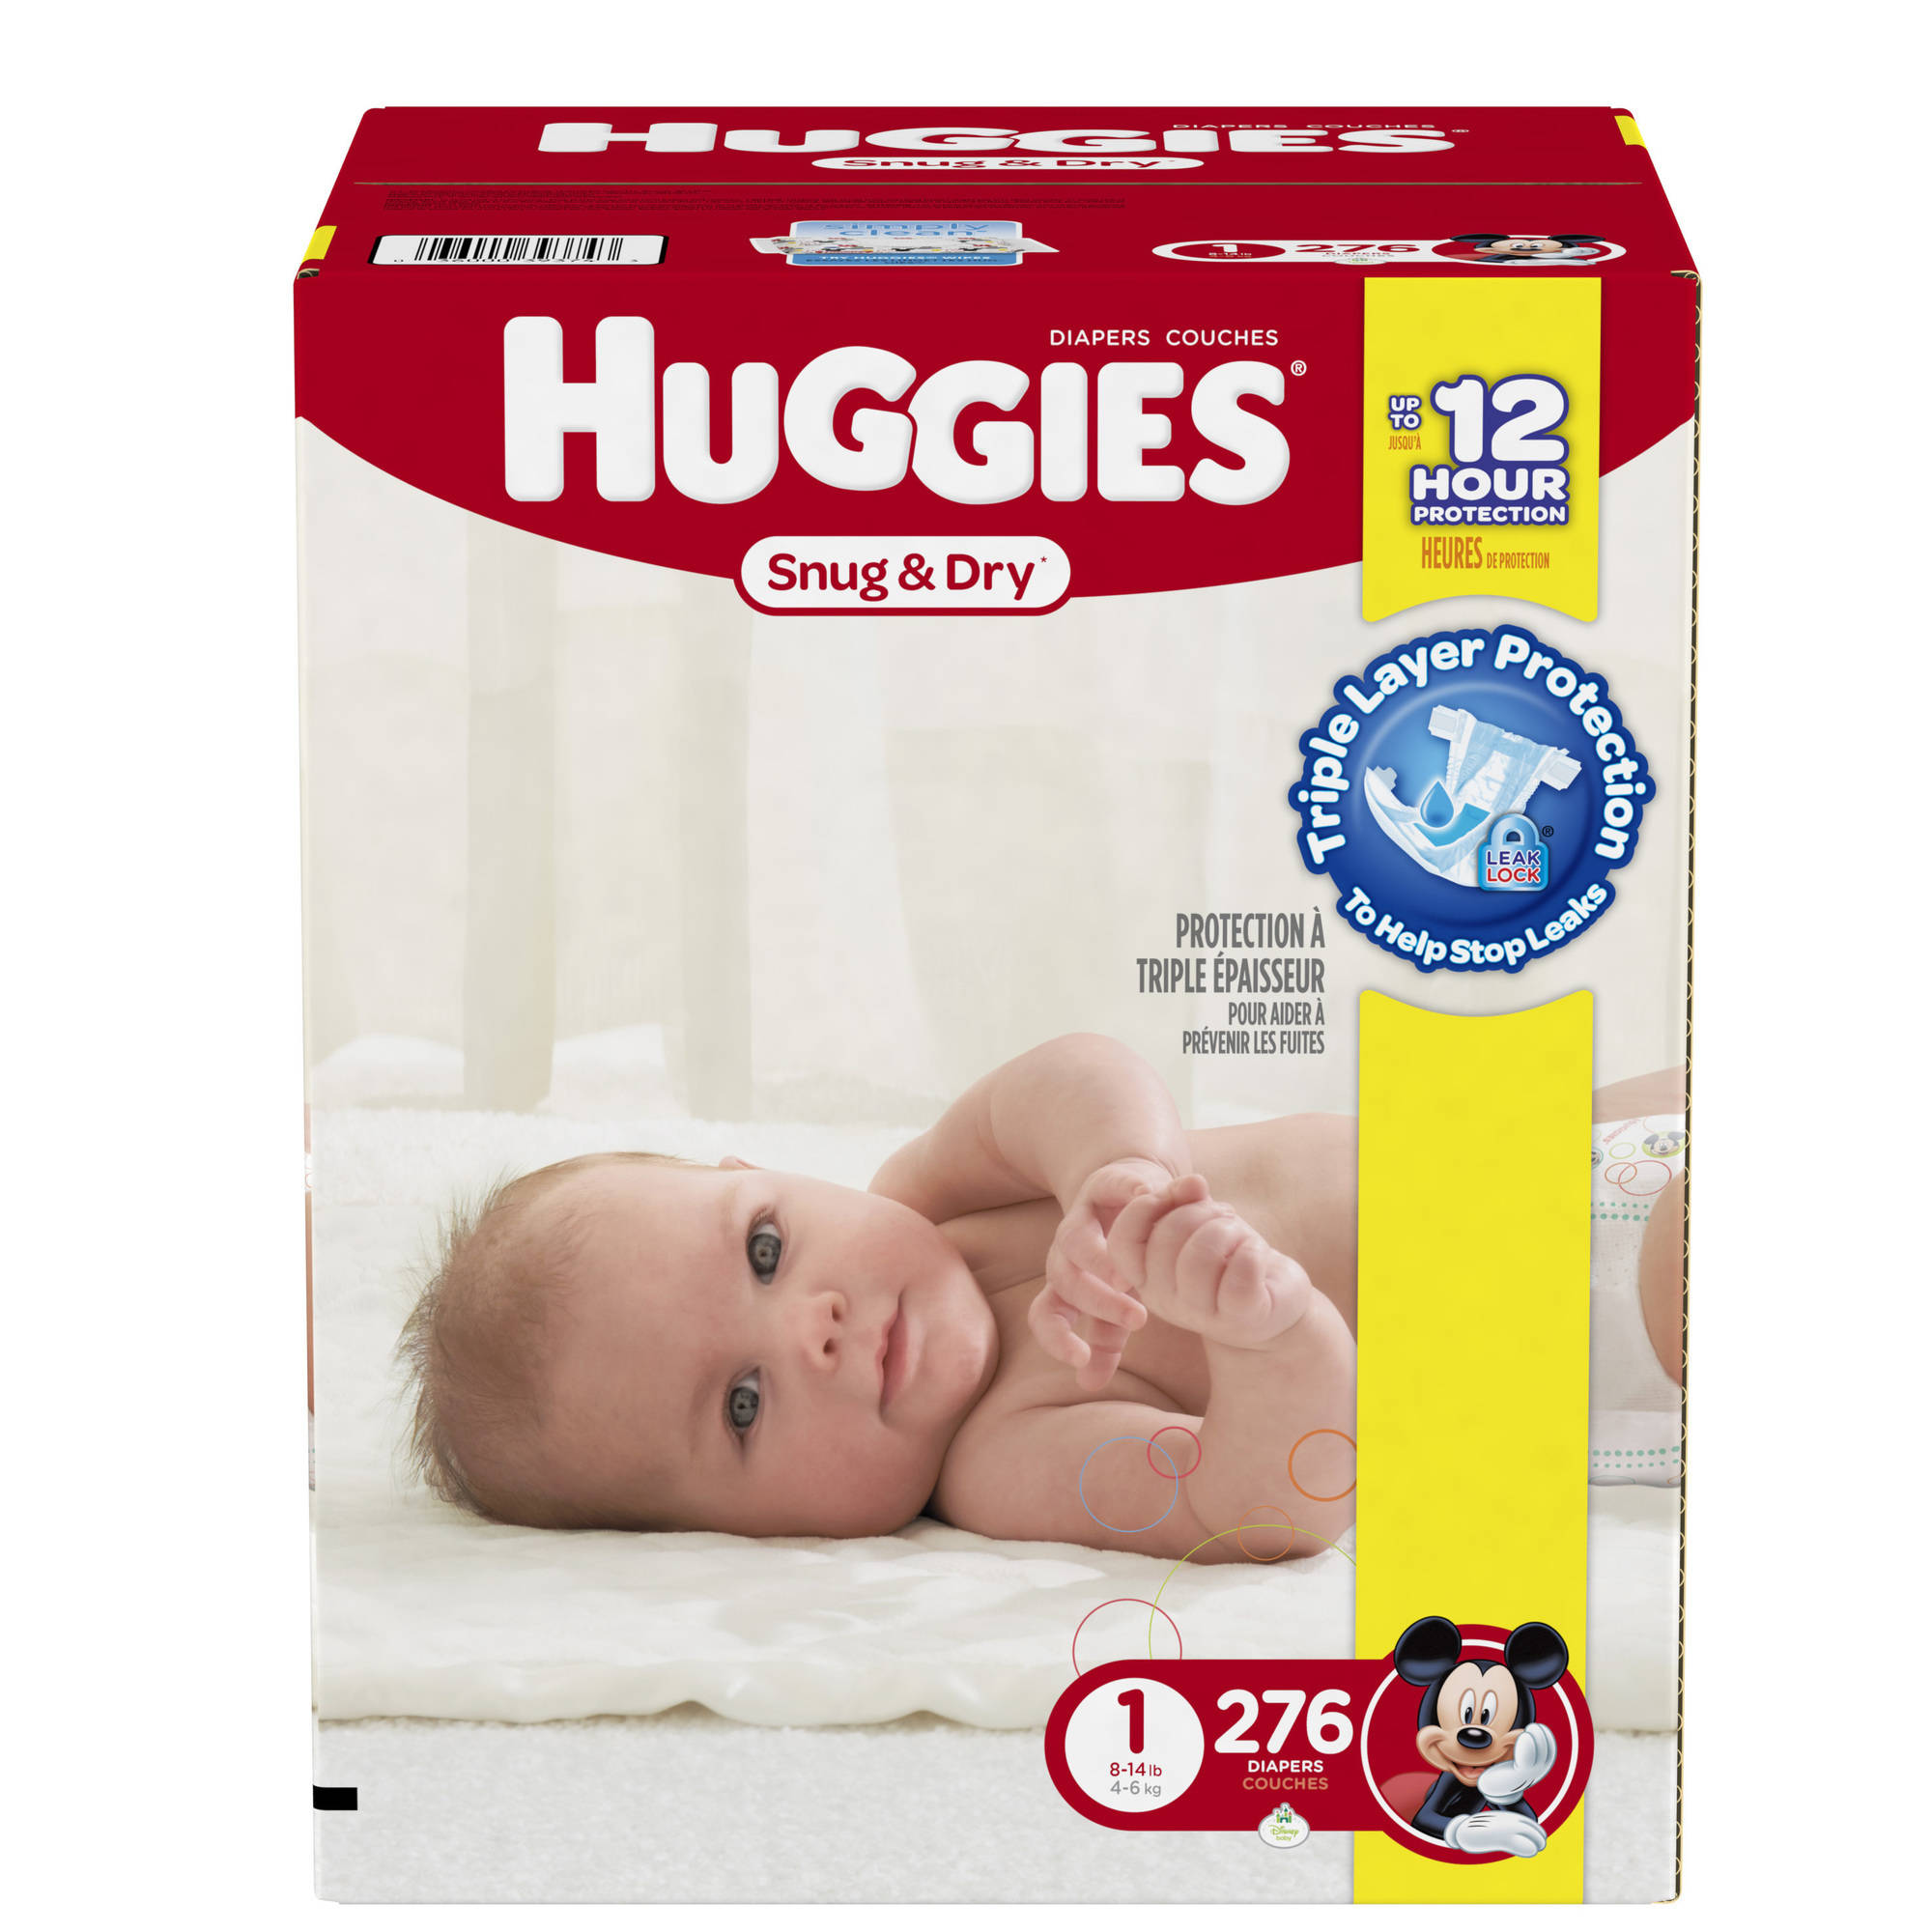 HUGGIES Snug and Dry Diapers, Economy Plus Pack (Choose Your Size)